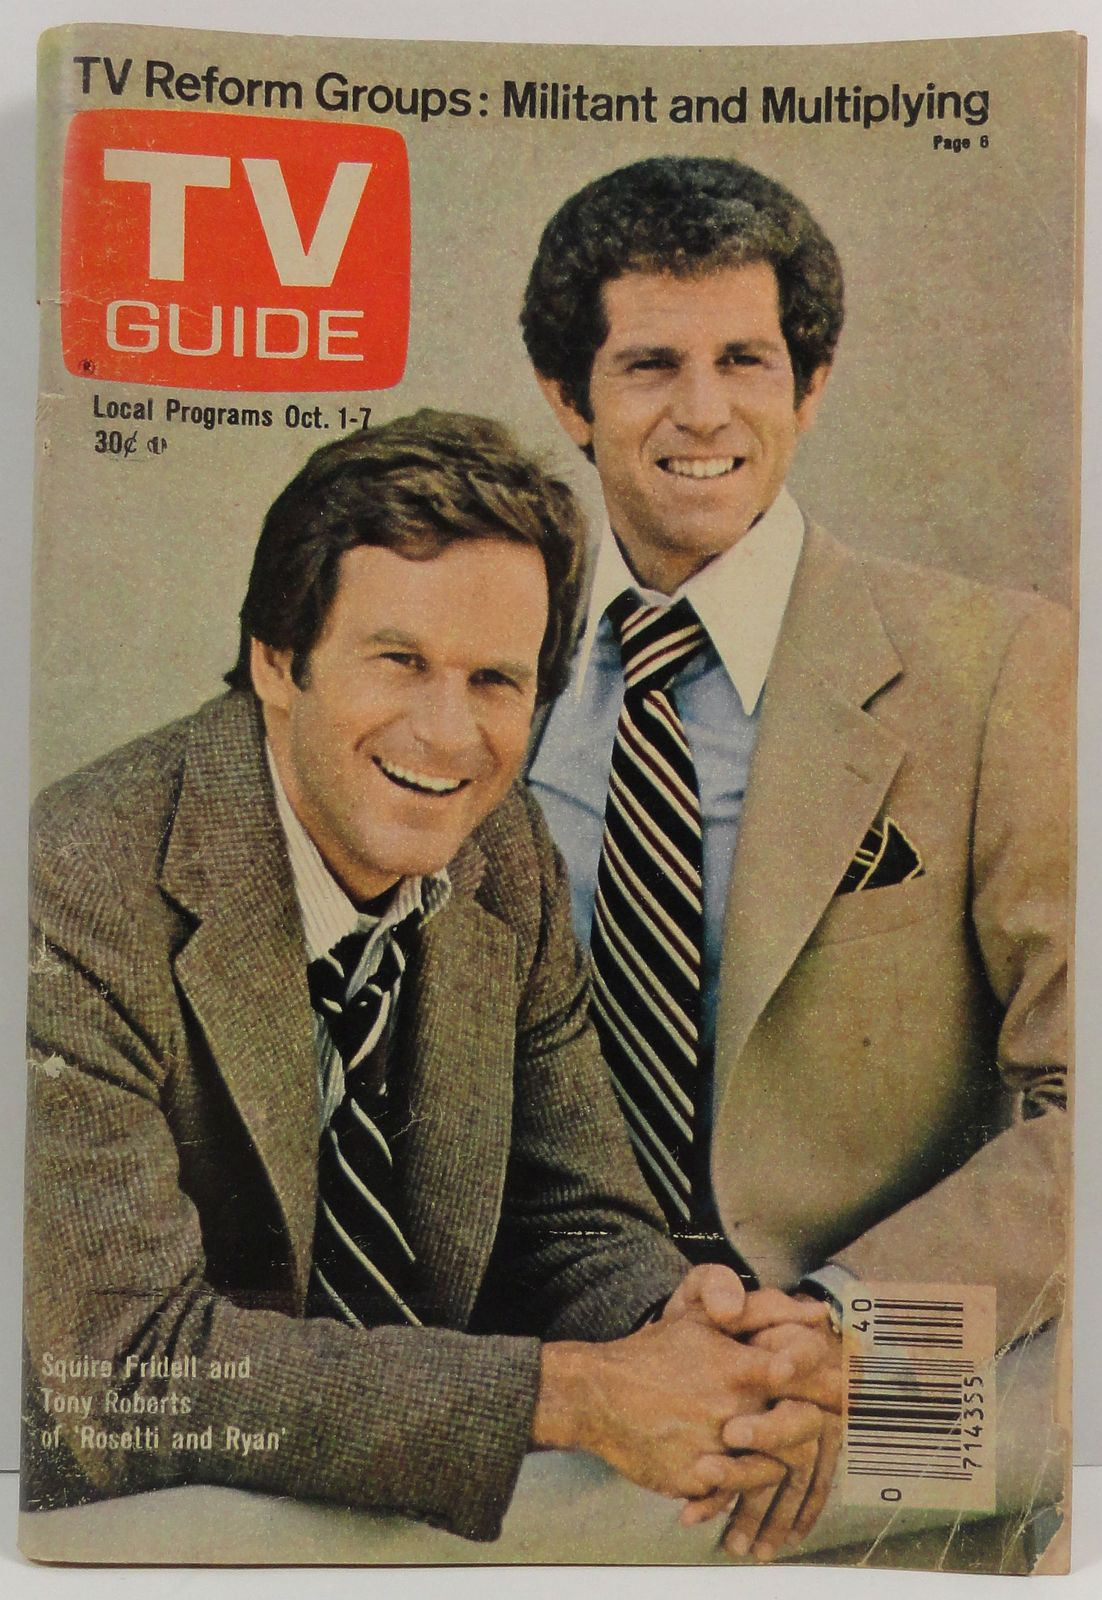 Primary image for TV Guide Magazine October 1, 1977  Squire Fridell Tony Roberts